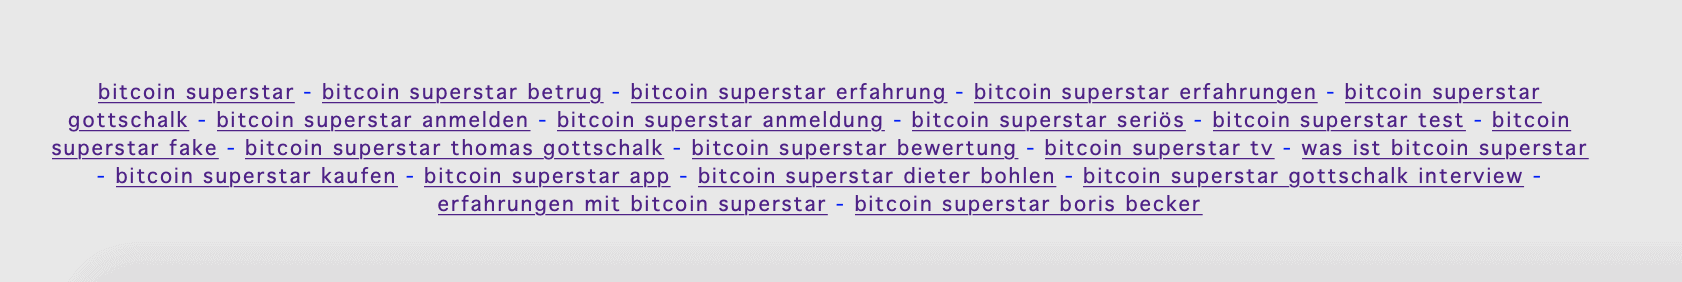 Keywords Bitcoin Superstar